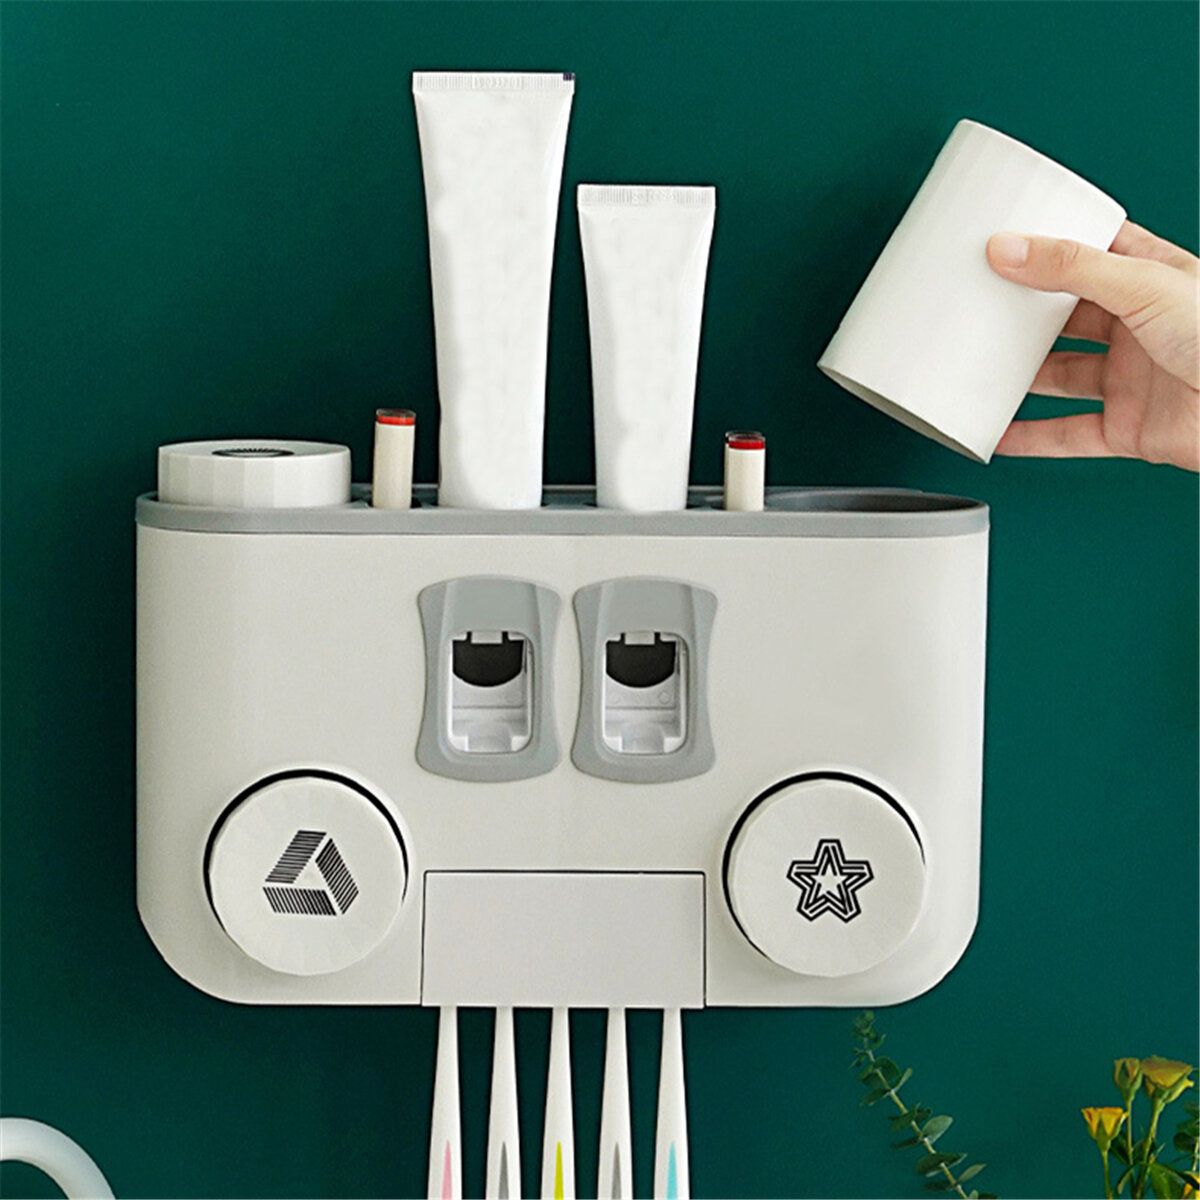 Perforation free Wall mounted Multifunctional Plastic Four cup Toothbrush Holder Set